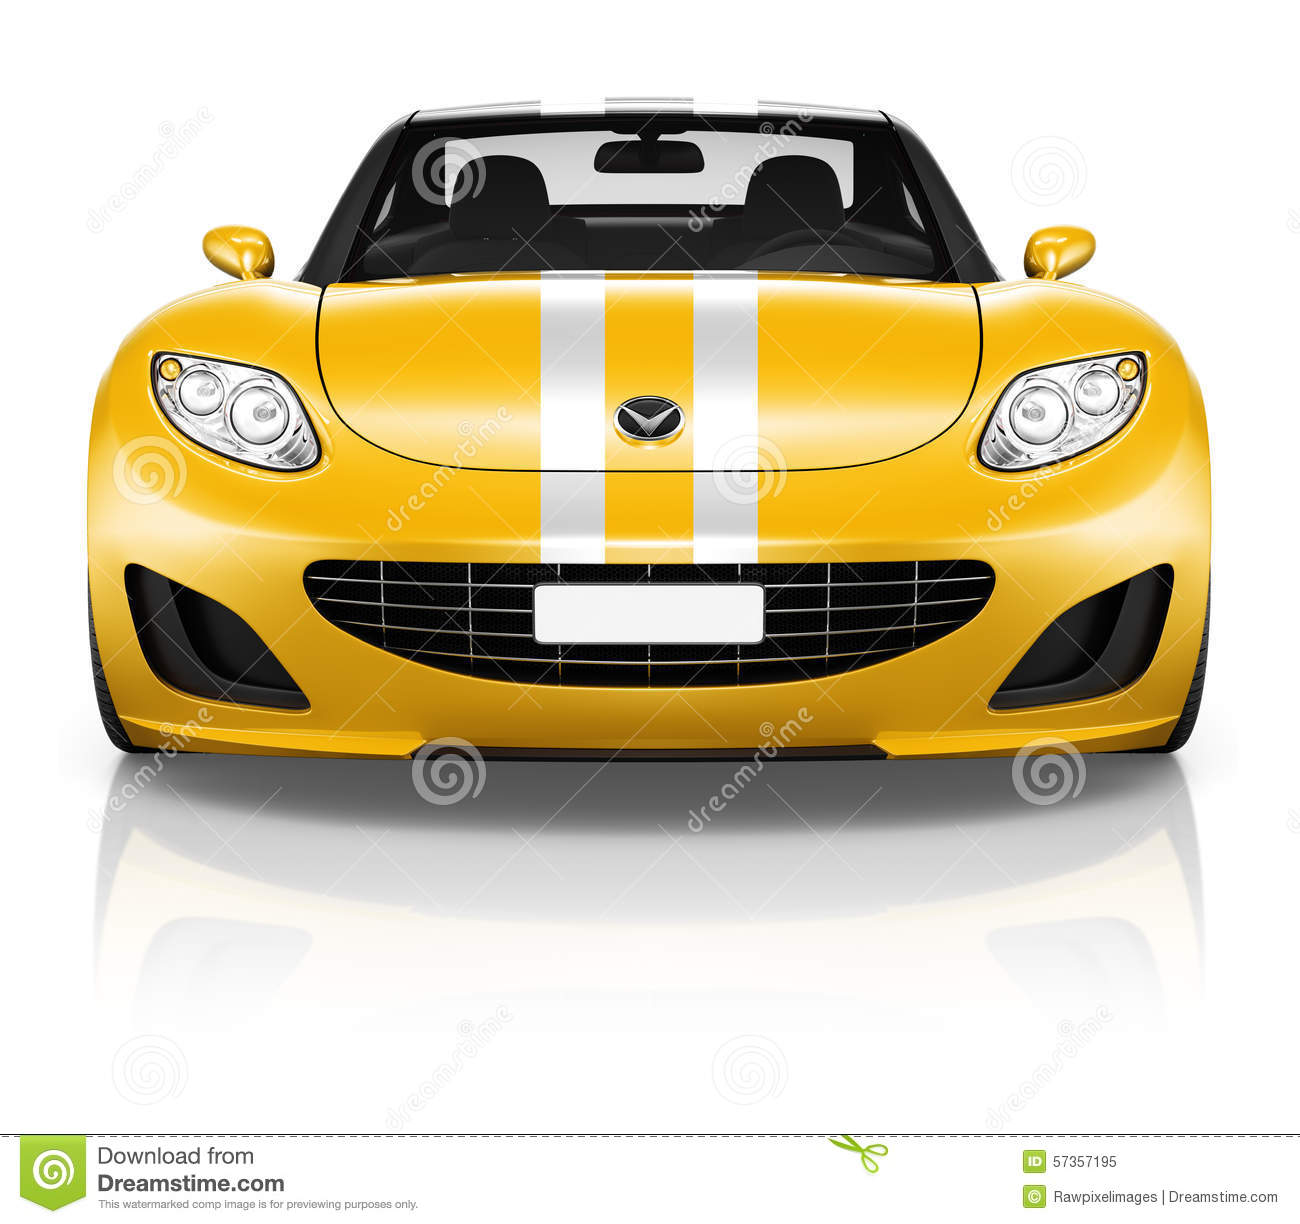 Car Automobile Contemporary Drive Driving Vehicle